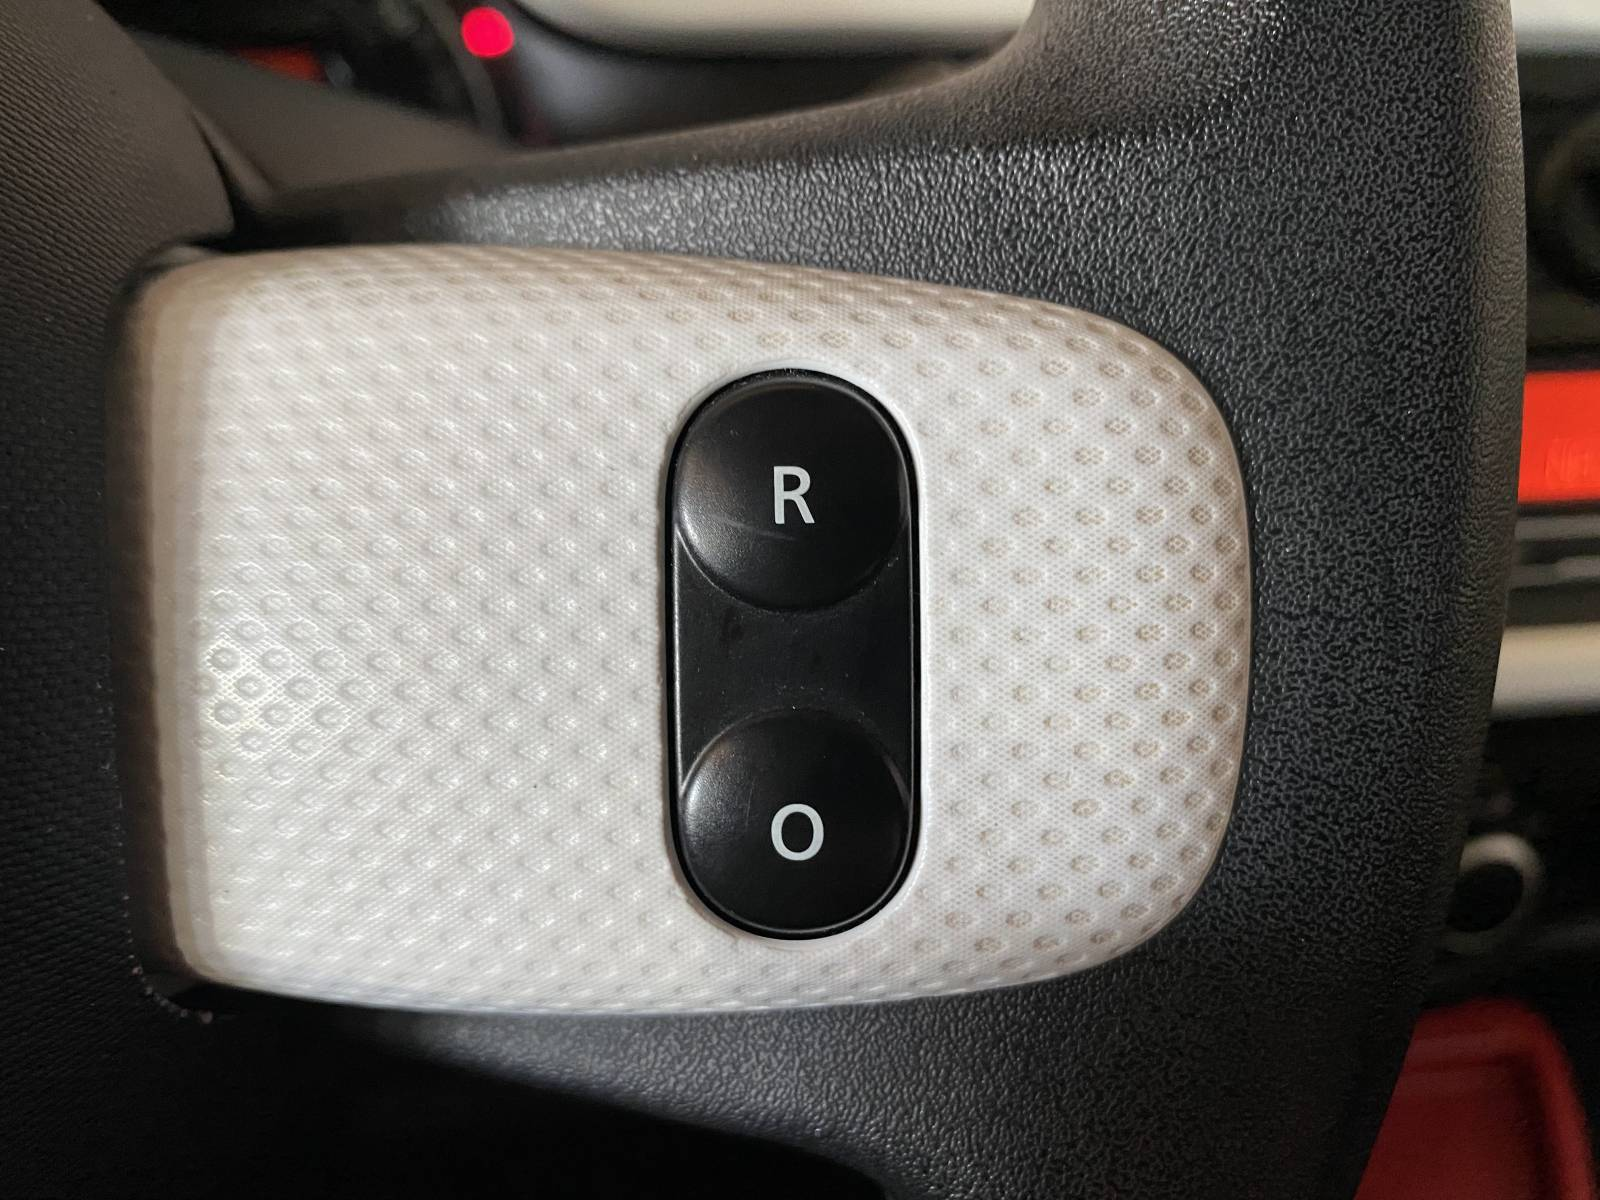 RENAULT Twingo III 0.9 TCe 90 Energy - véhicule d'occasion - Site Internet Faurie - Renault - Faurie Auto Bergerac - 24100 - Bergerac - 35